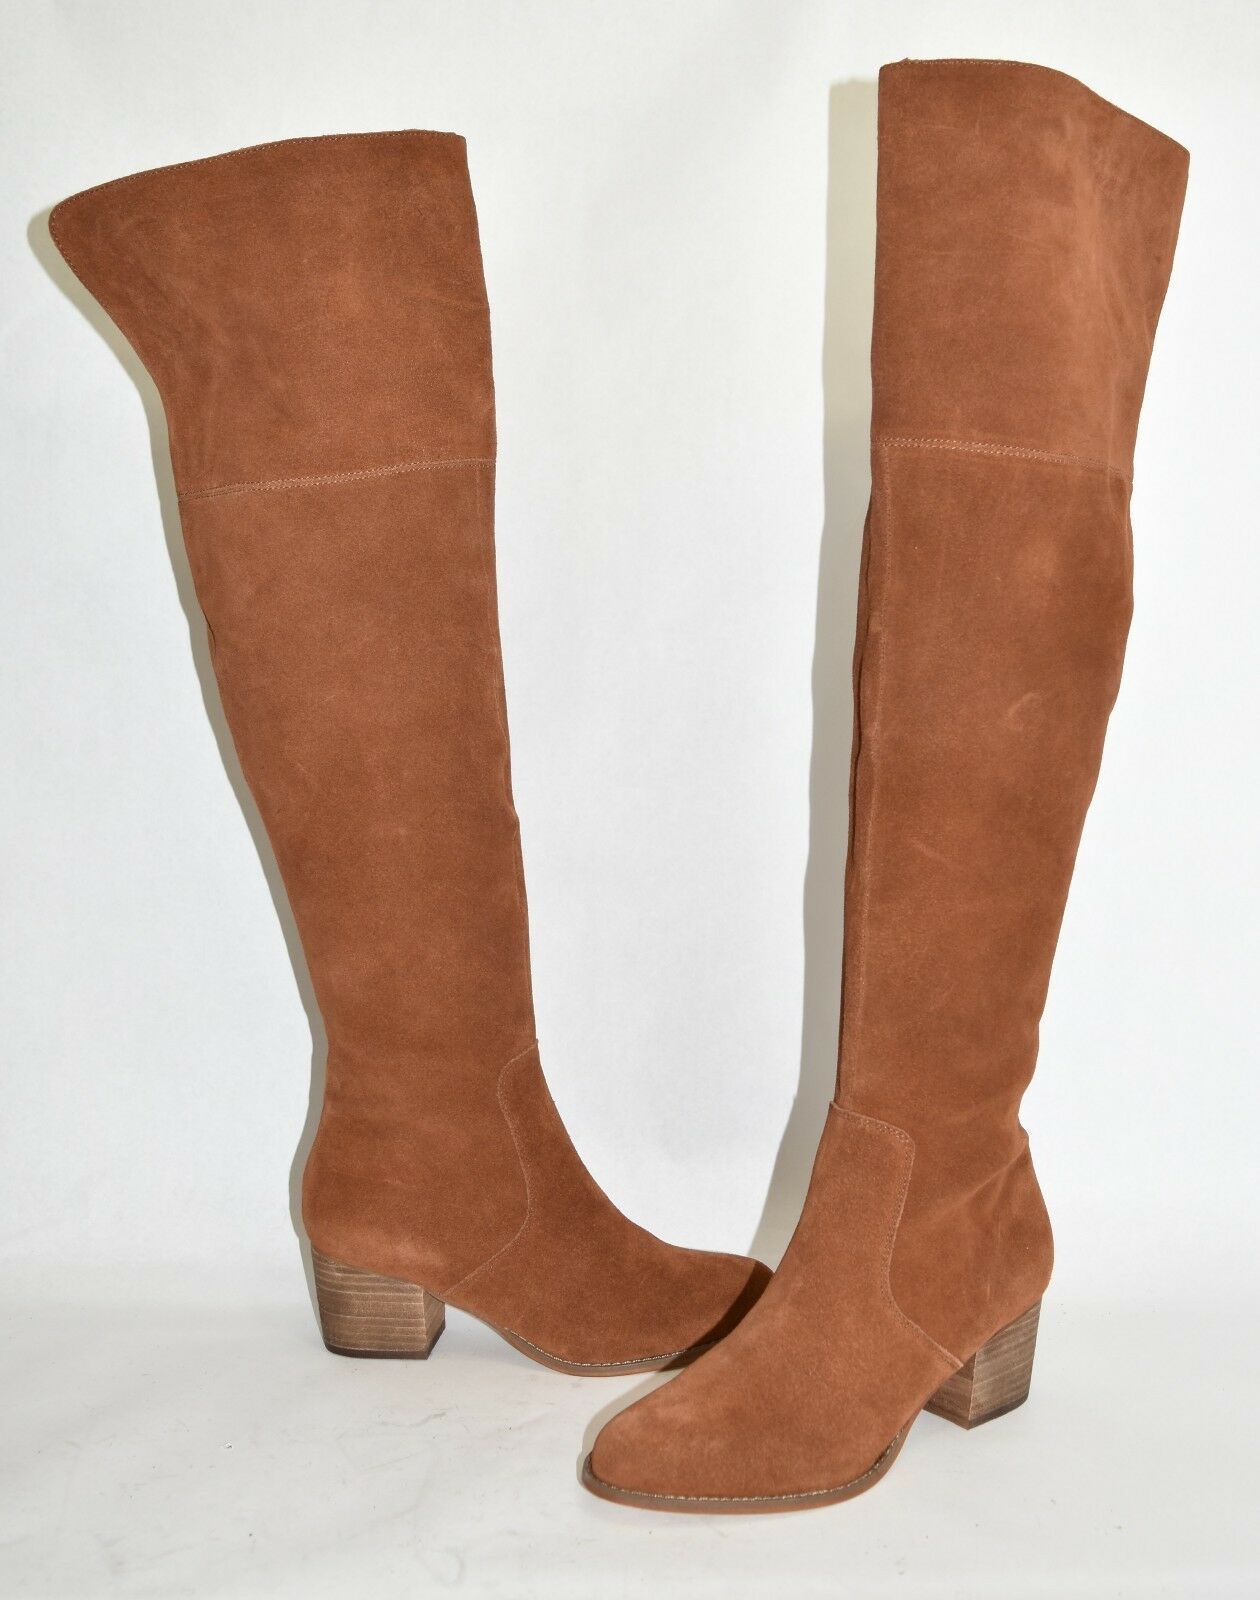 300 CORSO COMO HOBOKEN OVER THE KNEE OTK BOOTS SUEDE BROWN 8 (M12)